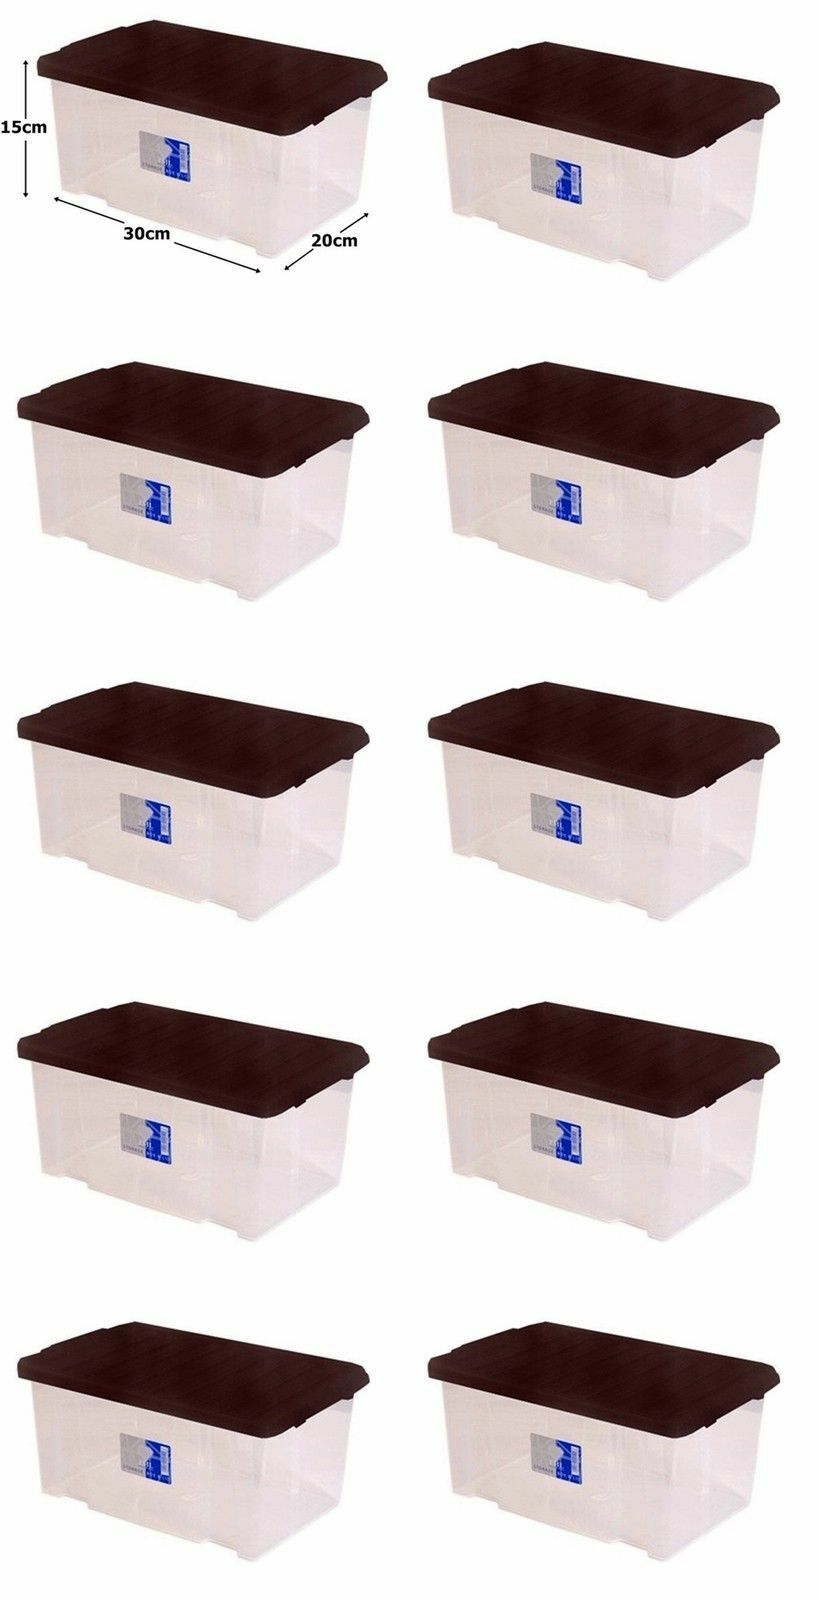 10 x 7L Clear Plastic Small Storage shoes Toys Tools Craft Supplies Box with Lid